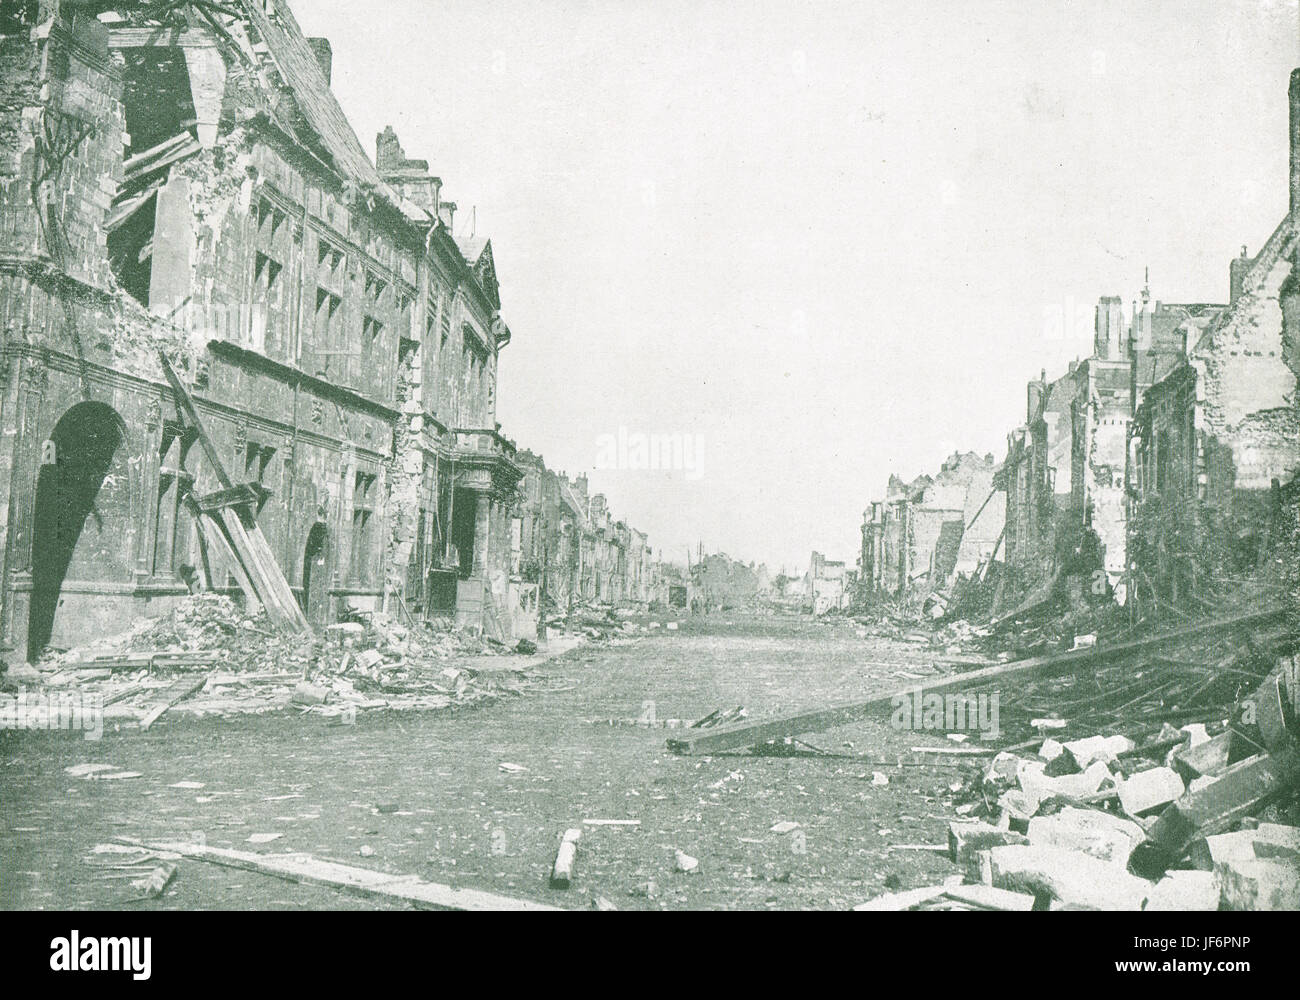 Peronne after the German retreat, 1917 - Stock Image